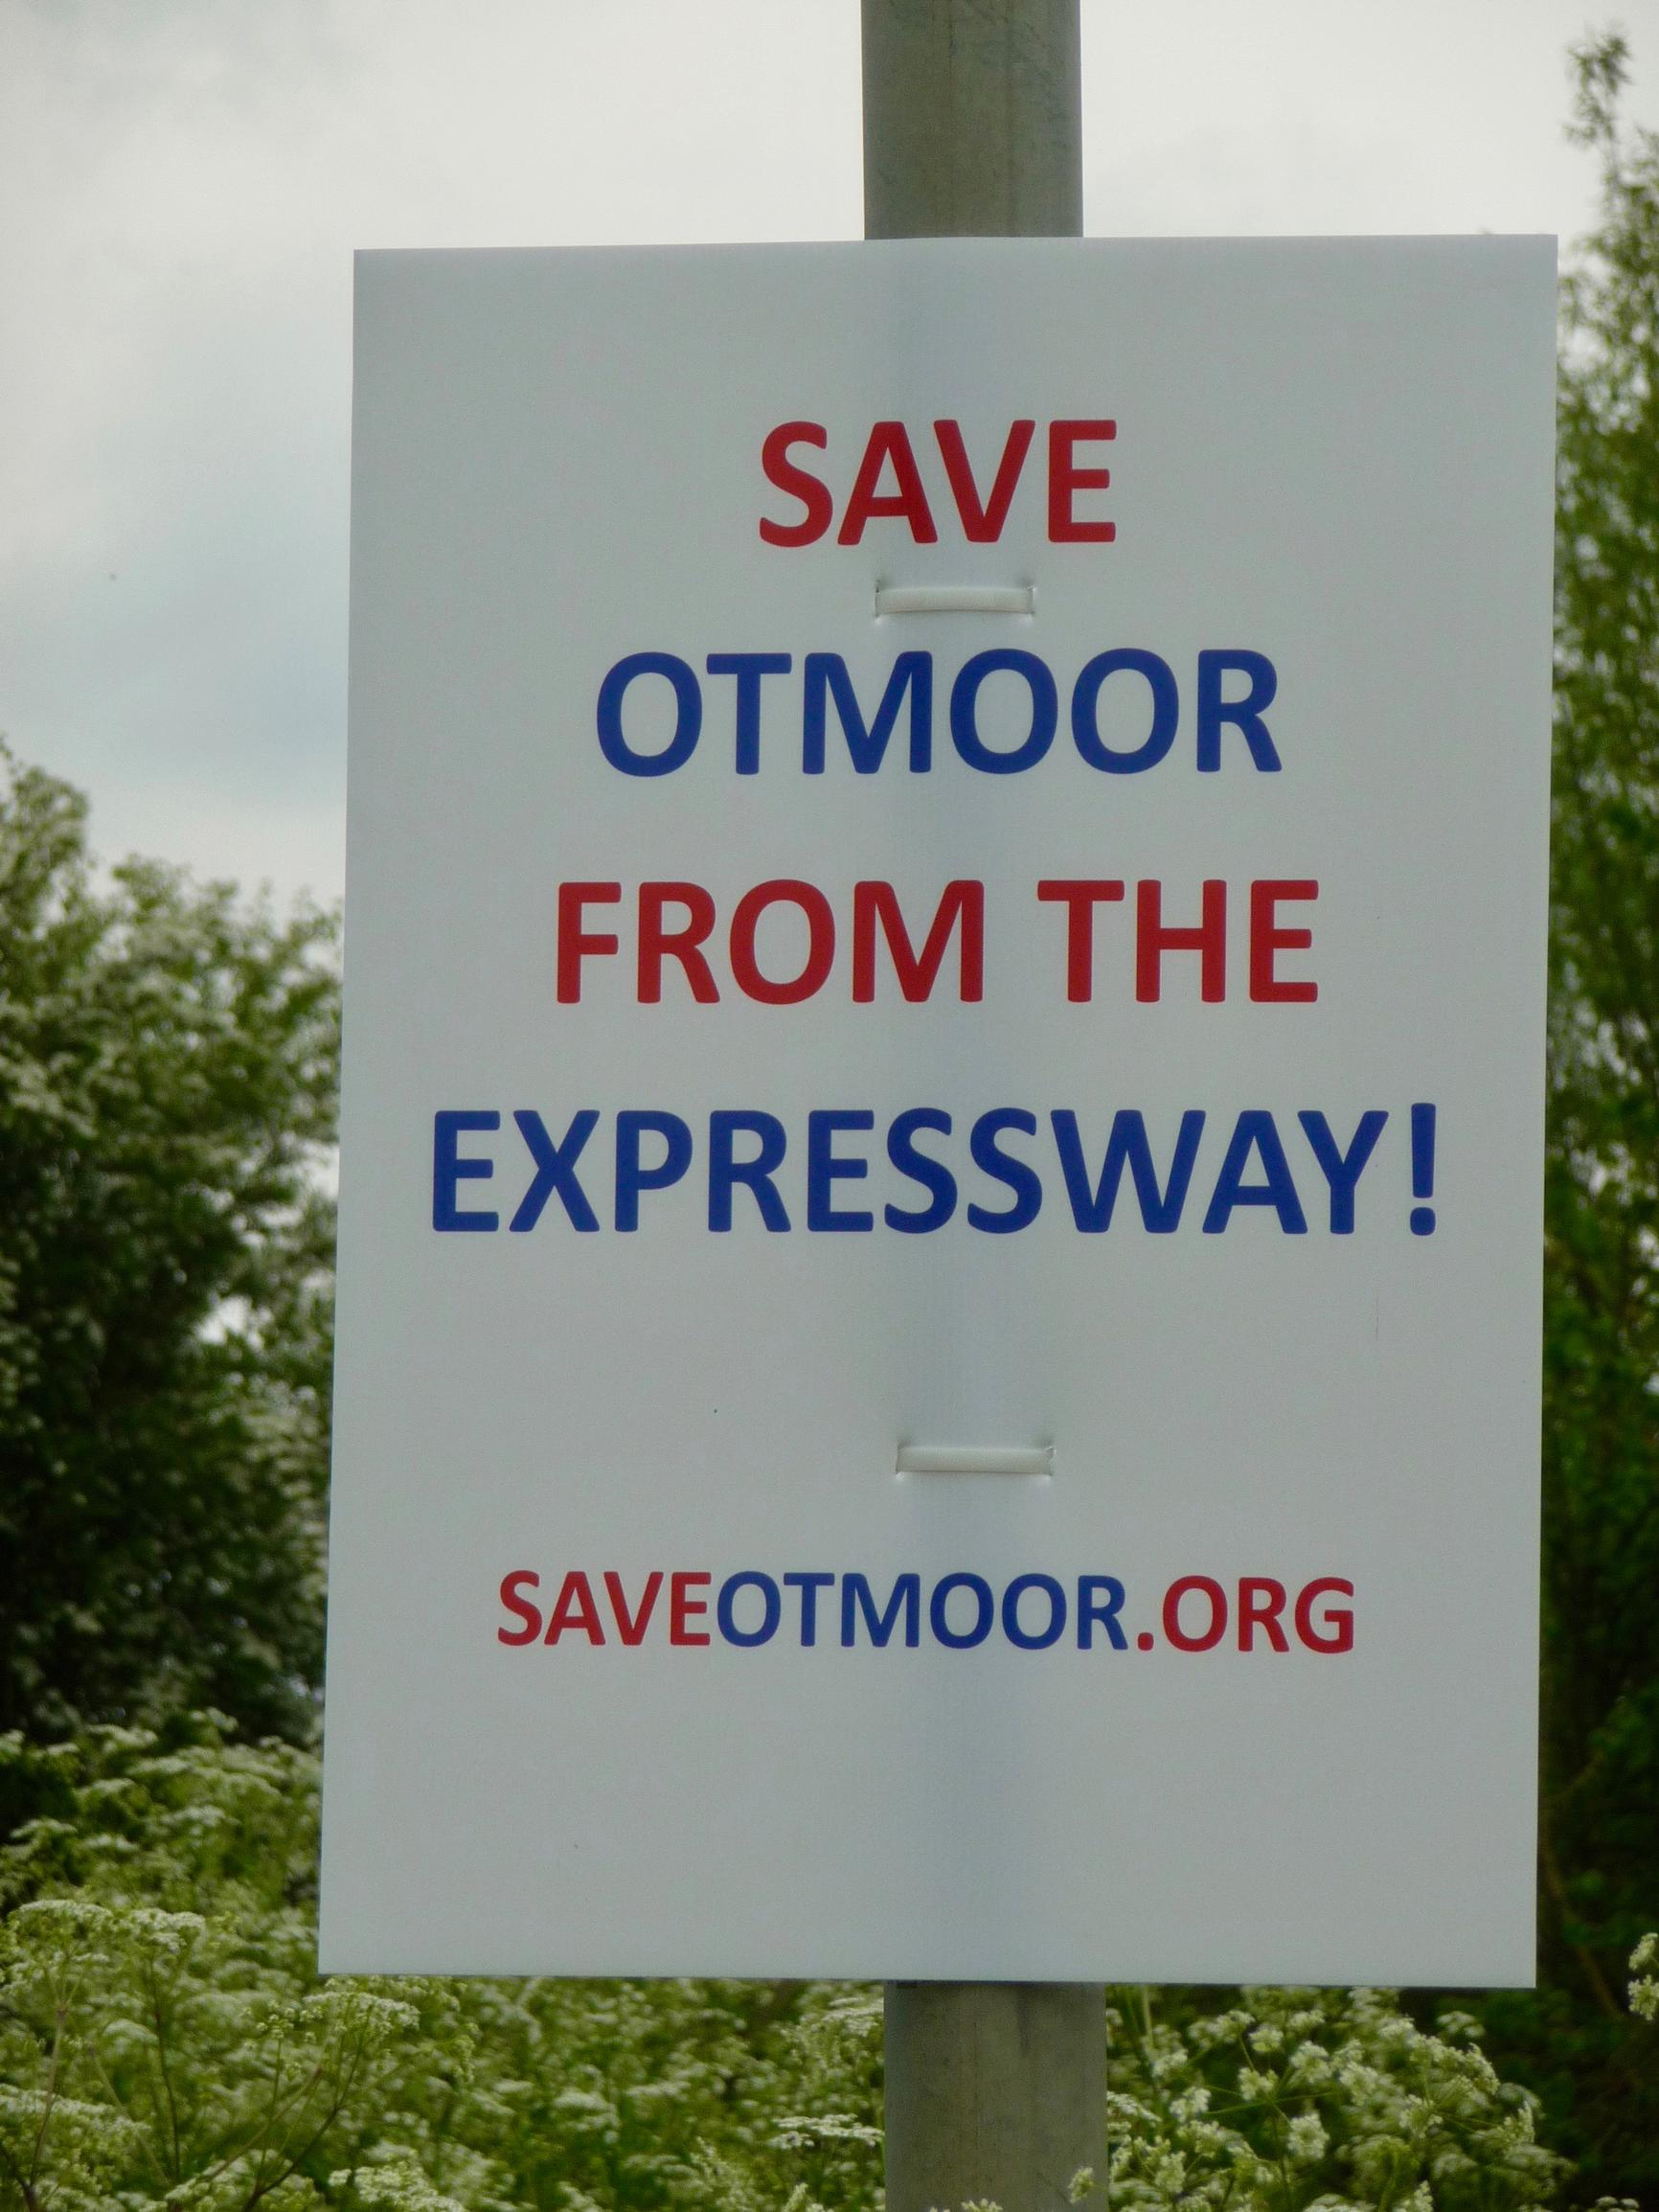 The road could be built through the countryside of Otmoor, to the north of Oxford